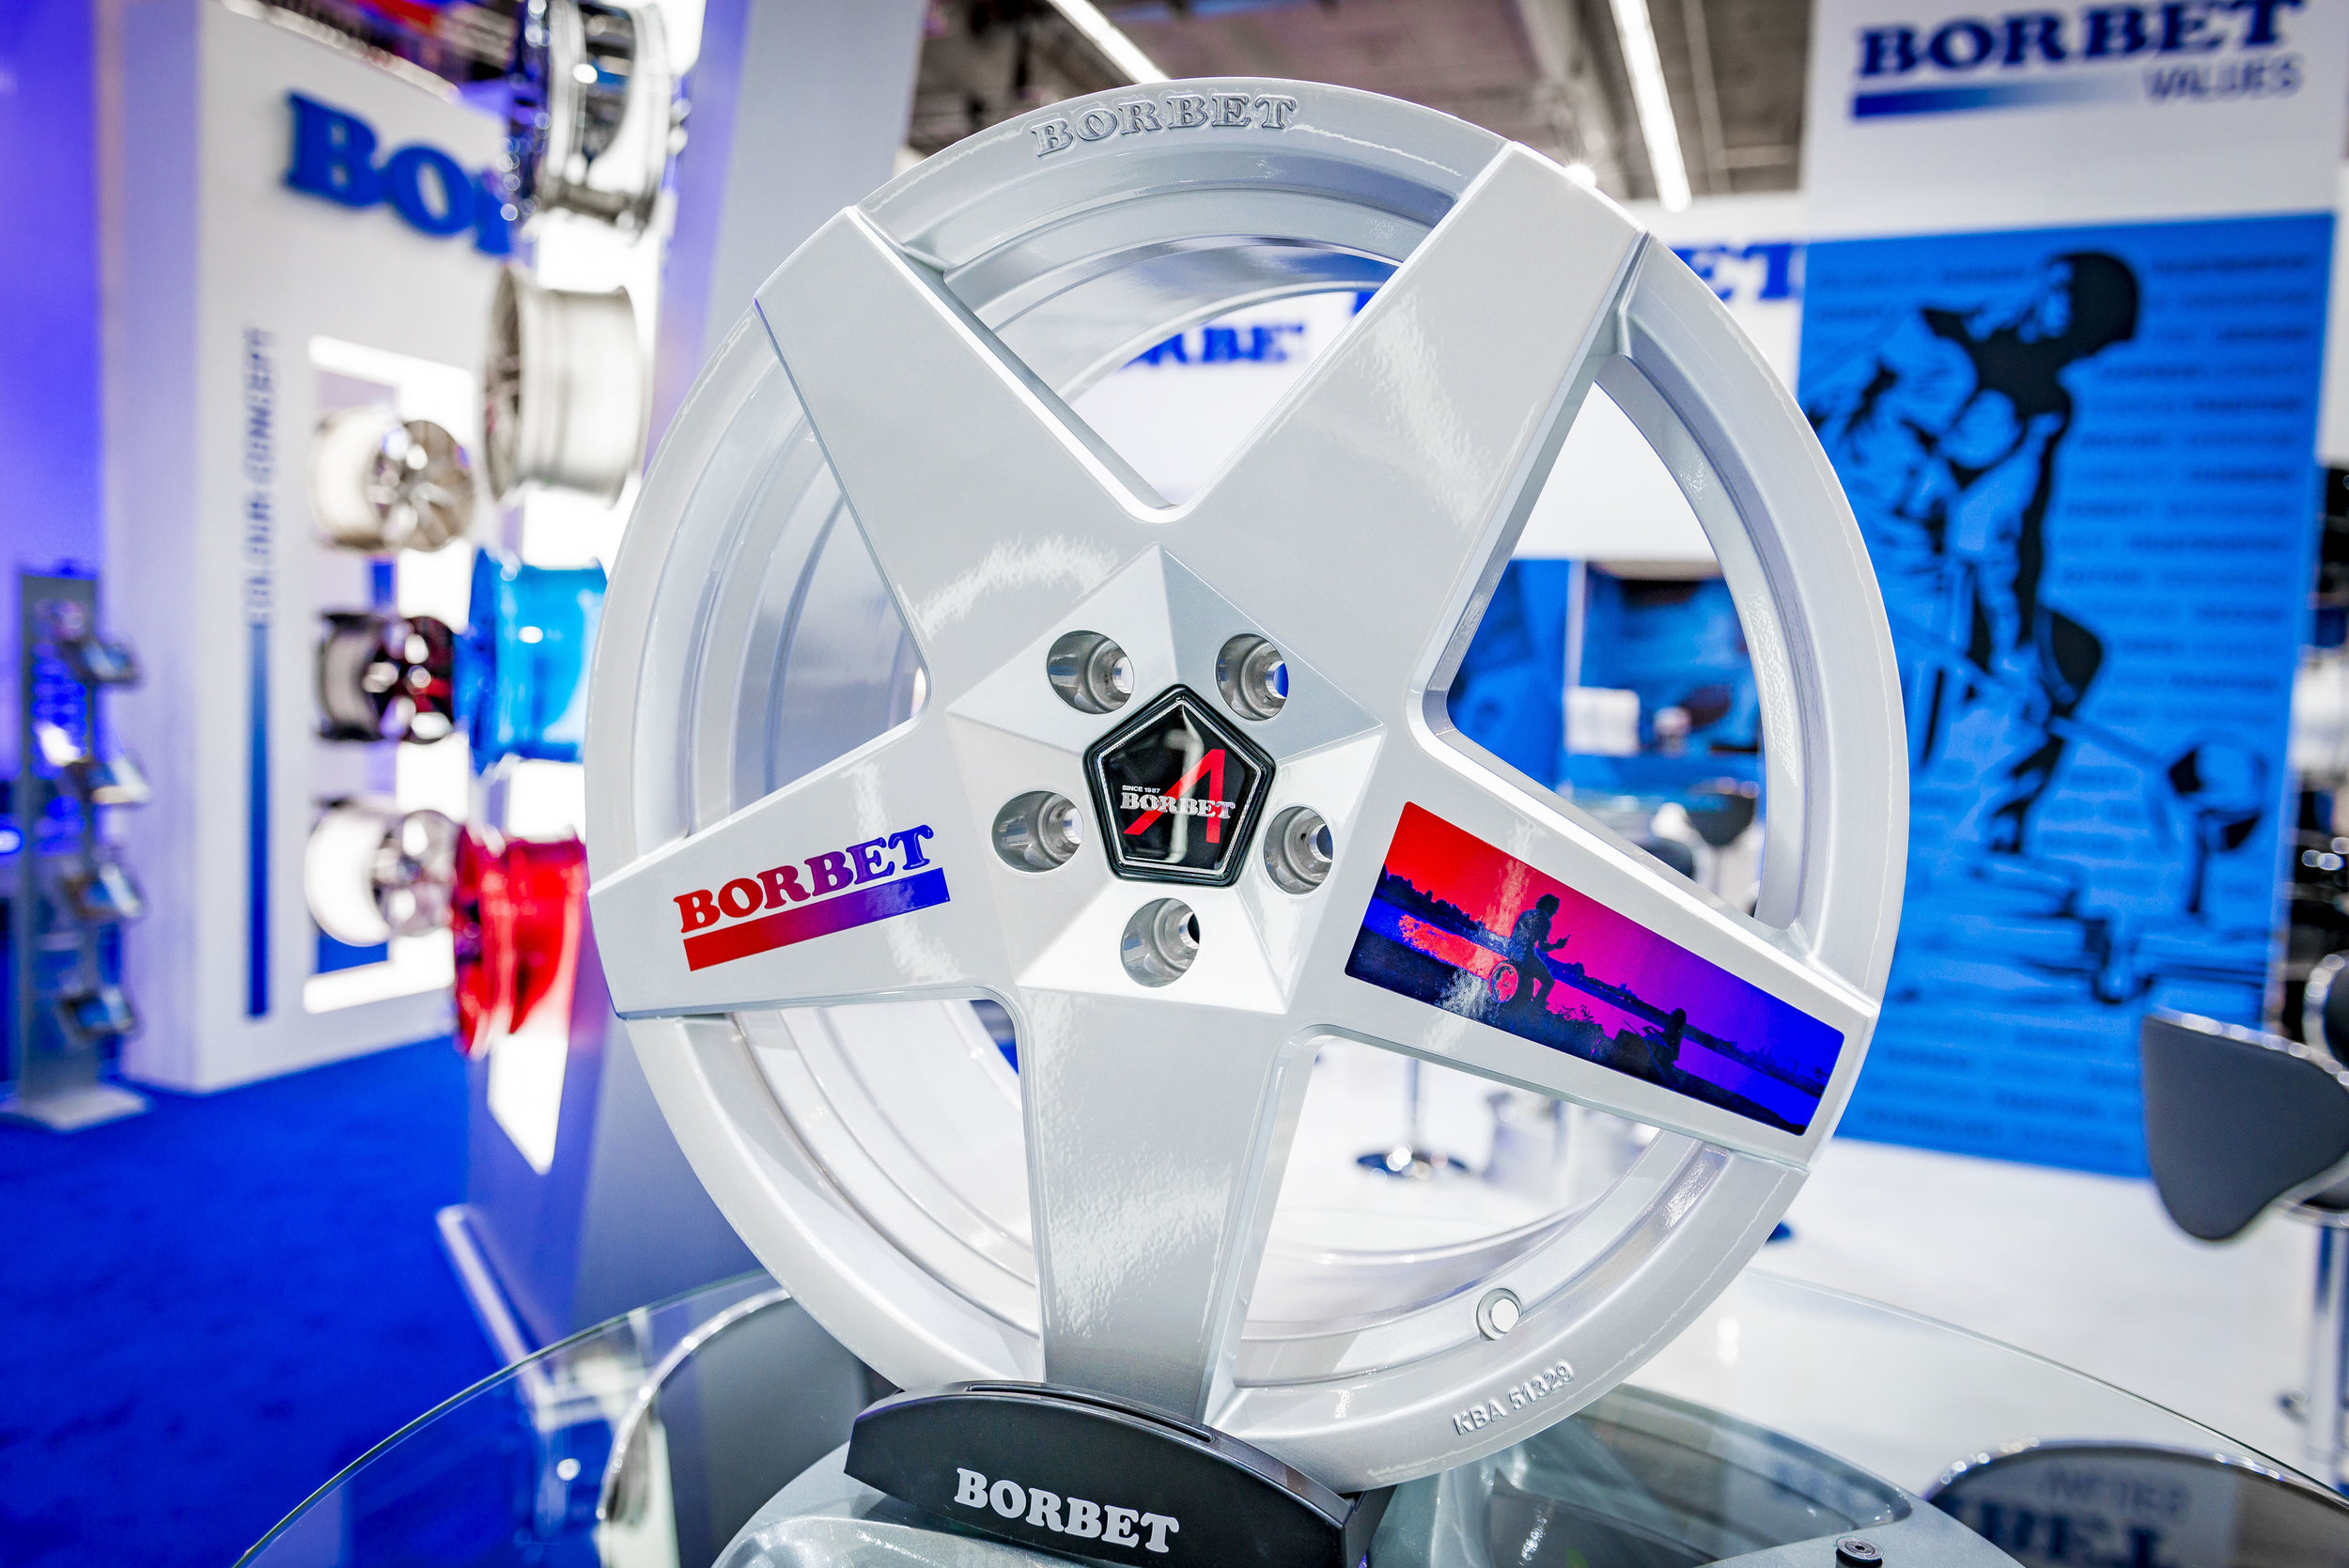 Borbet presents alloy rims finished using Omnifire technology, which, unlike other methods, also enables complex color gradients.